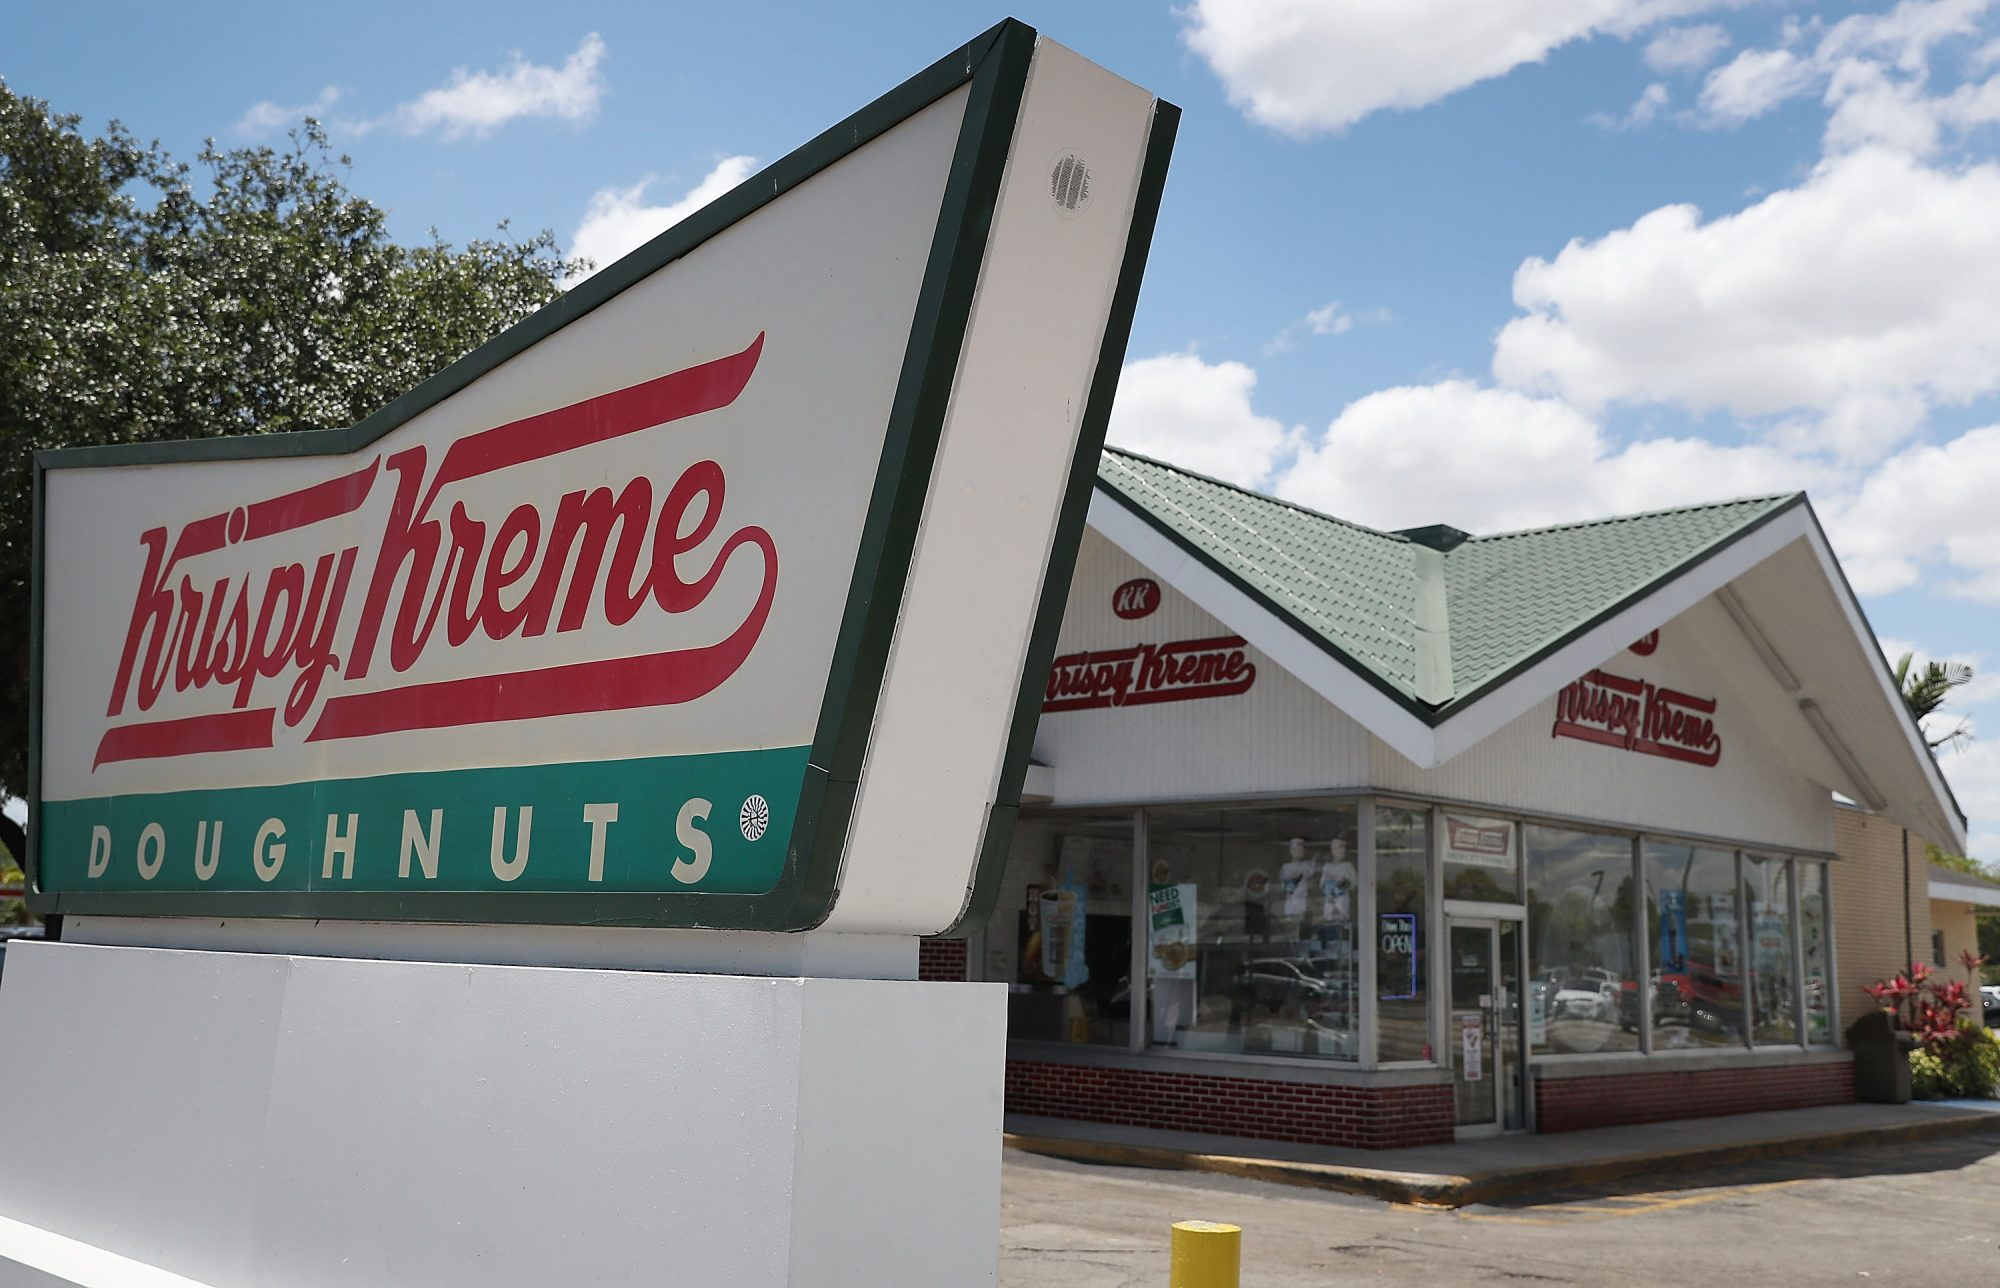 Krispy Kreme Exterior and Sign